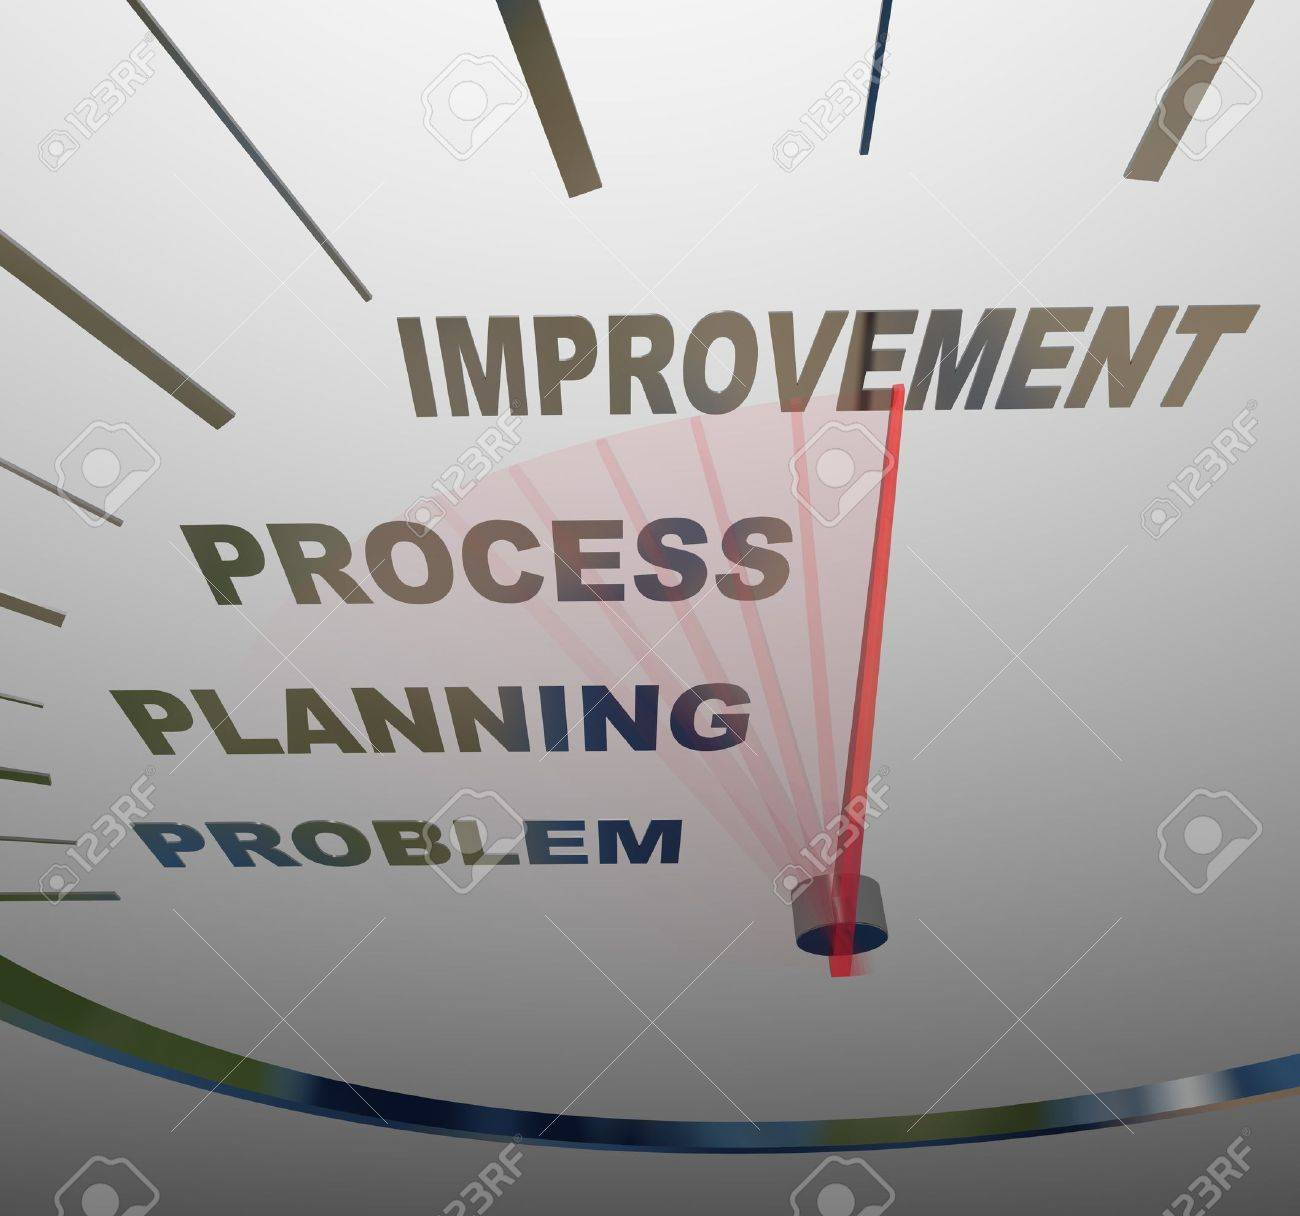 A speedometer with needle racing to Improvement, past the words problem, planning and process, symbolizing the need to implement change to improve a situation Stock Photo - 9448038